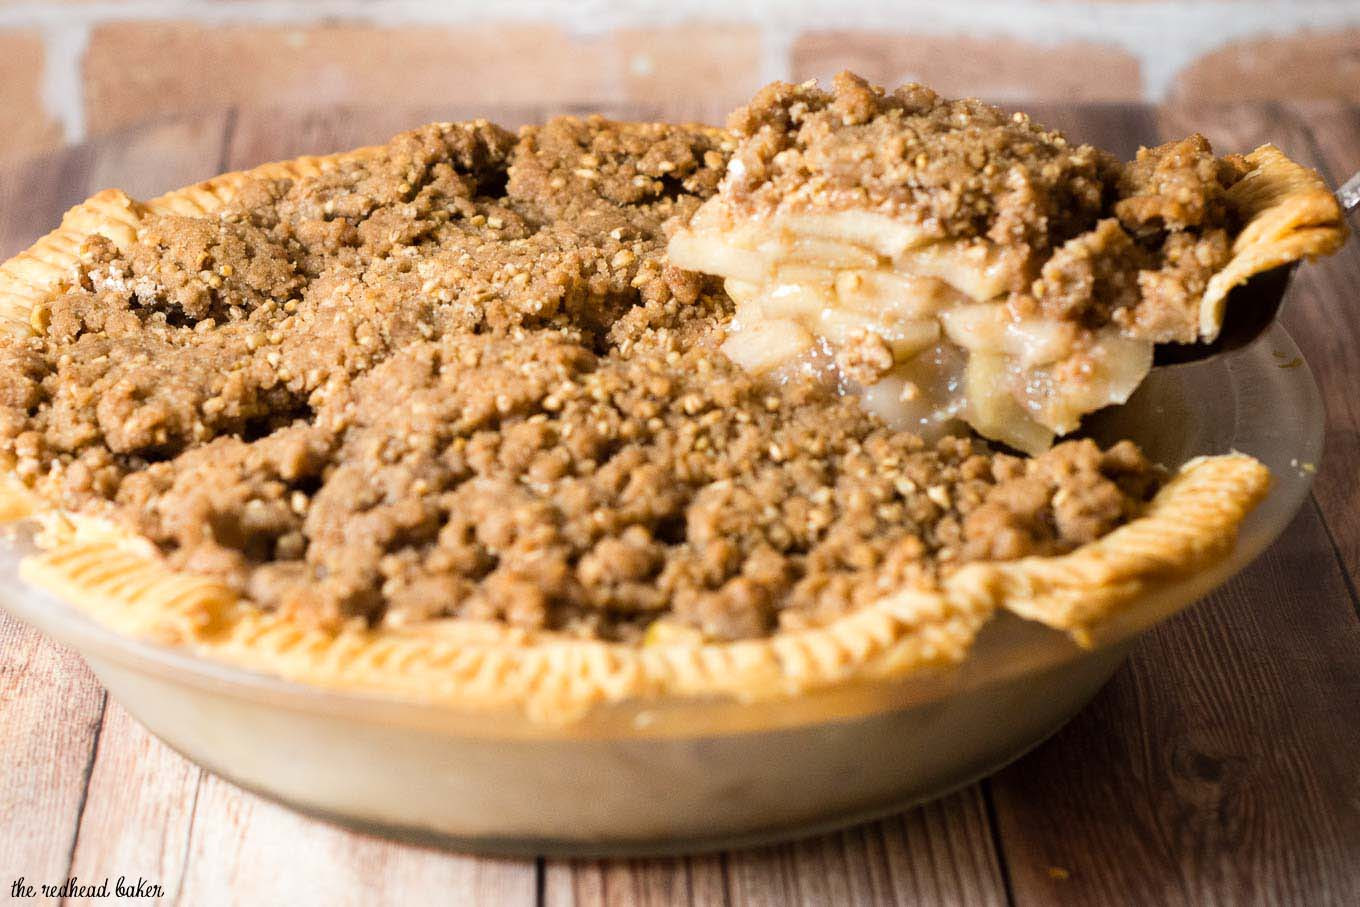 Apple Pie With Crumble Topping  Apple Pie with Oat Crumb Topping by The Redhead Baker